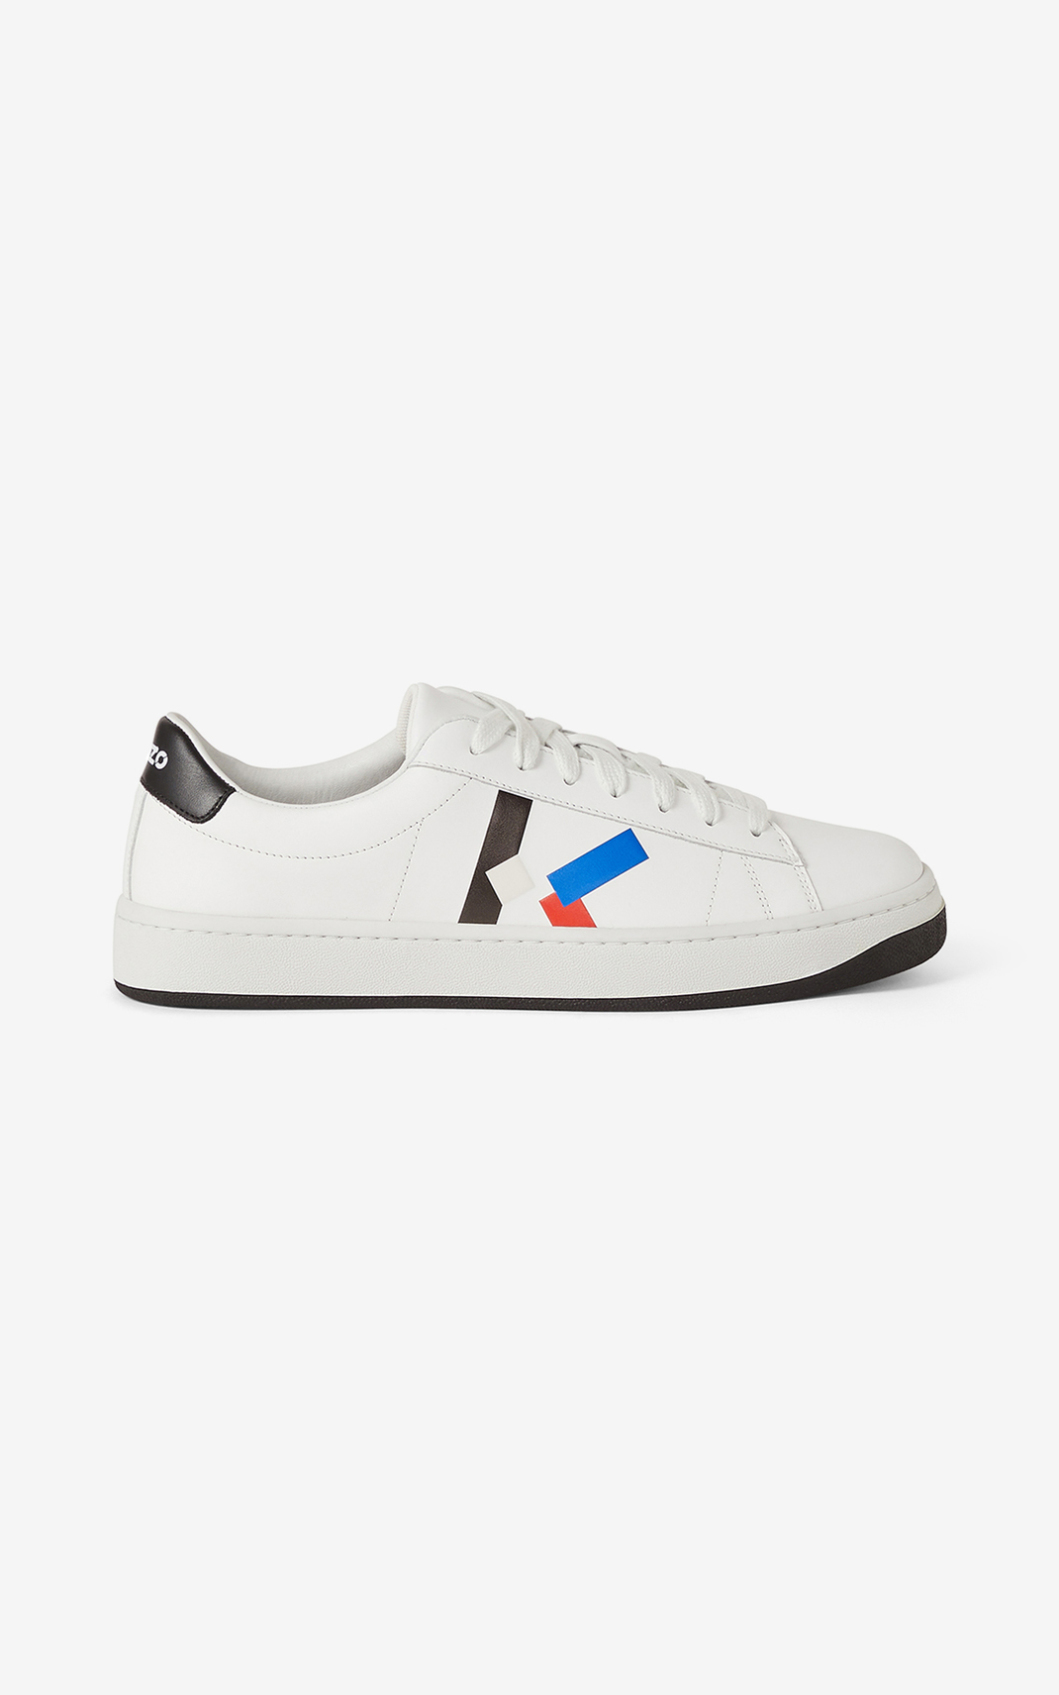 Kenzo Kourt Lace Up Sneakers In Bleu Roi